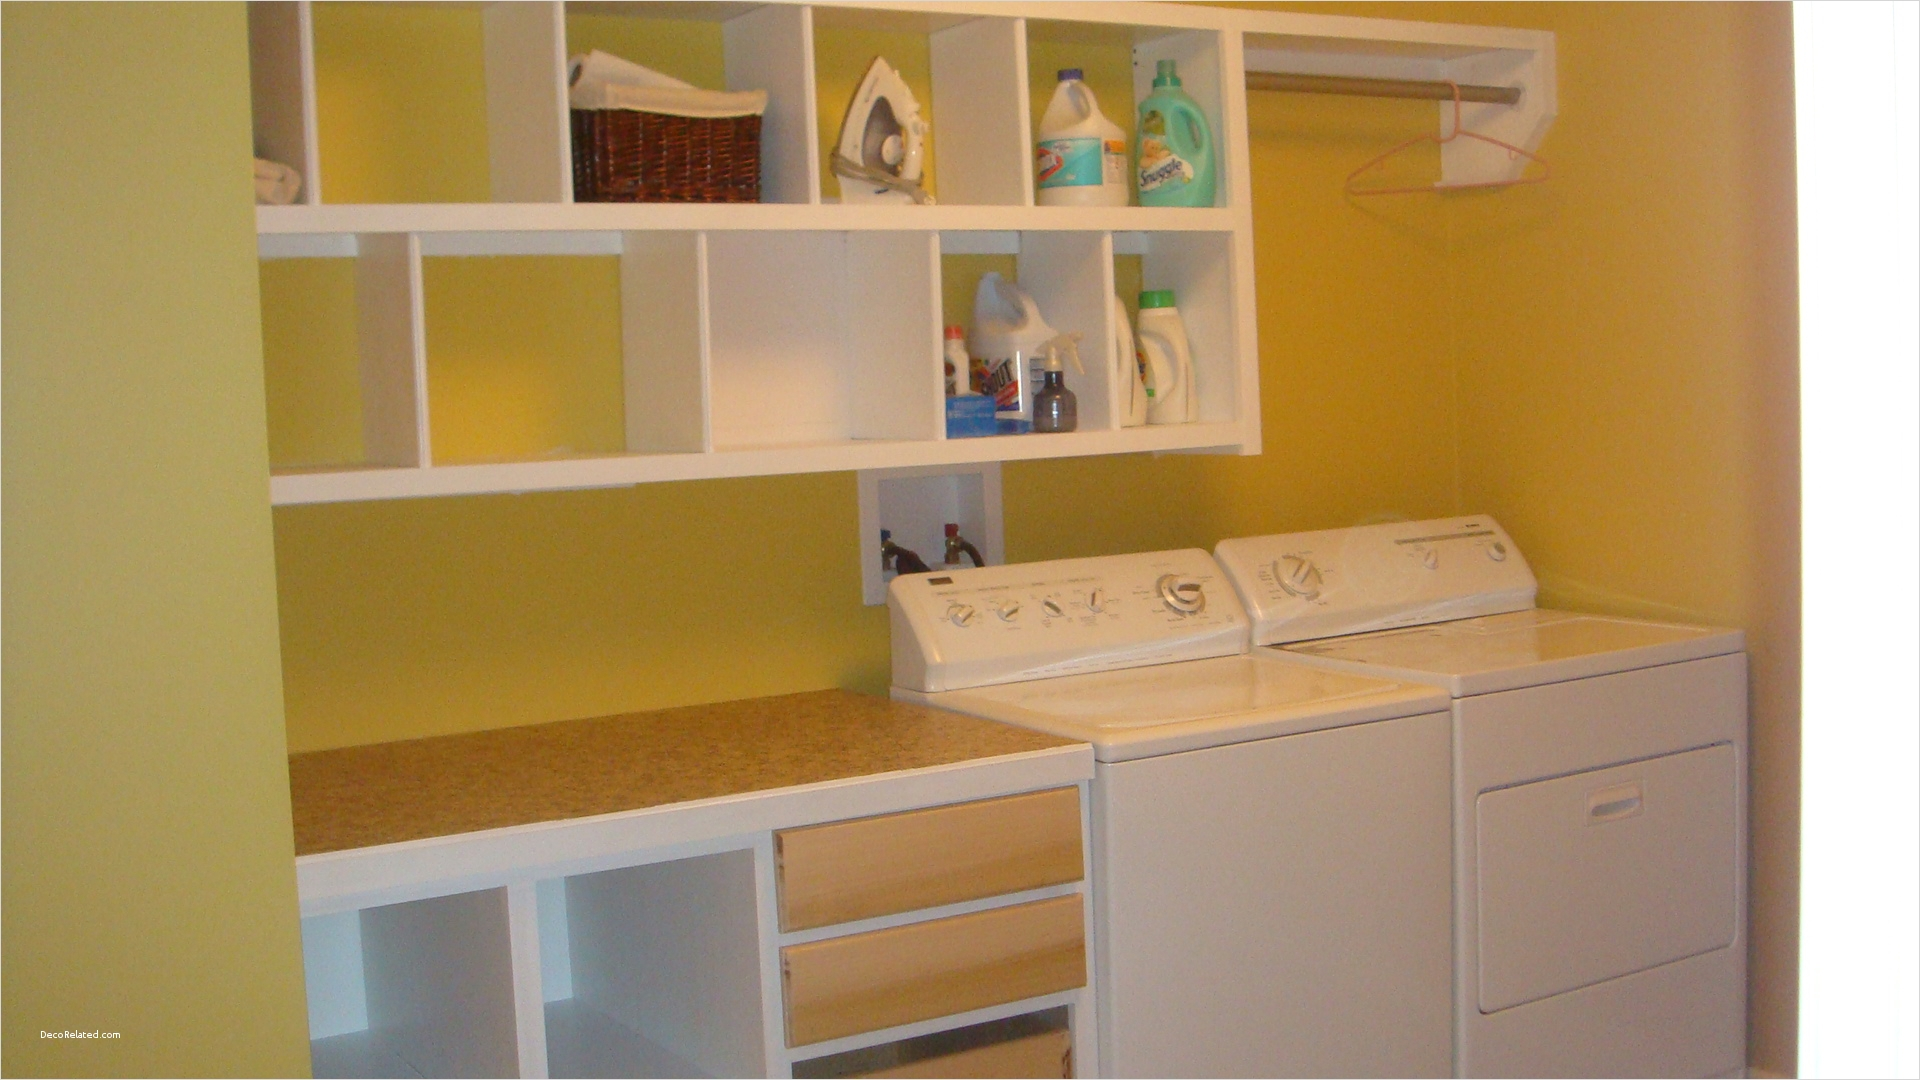 Laundry Room Wall Art Decor Layout 33 Very Small Basement Laundry Room Design with Yellow Wall Interior Color Paint Decor Bined 7